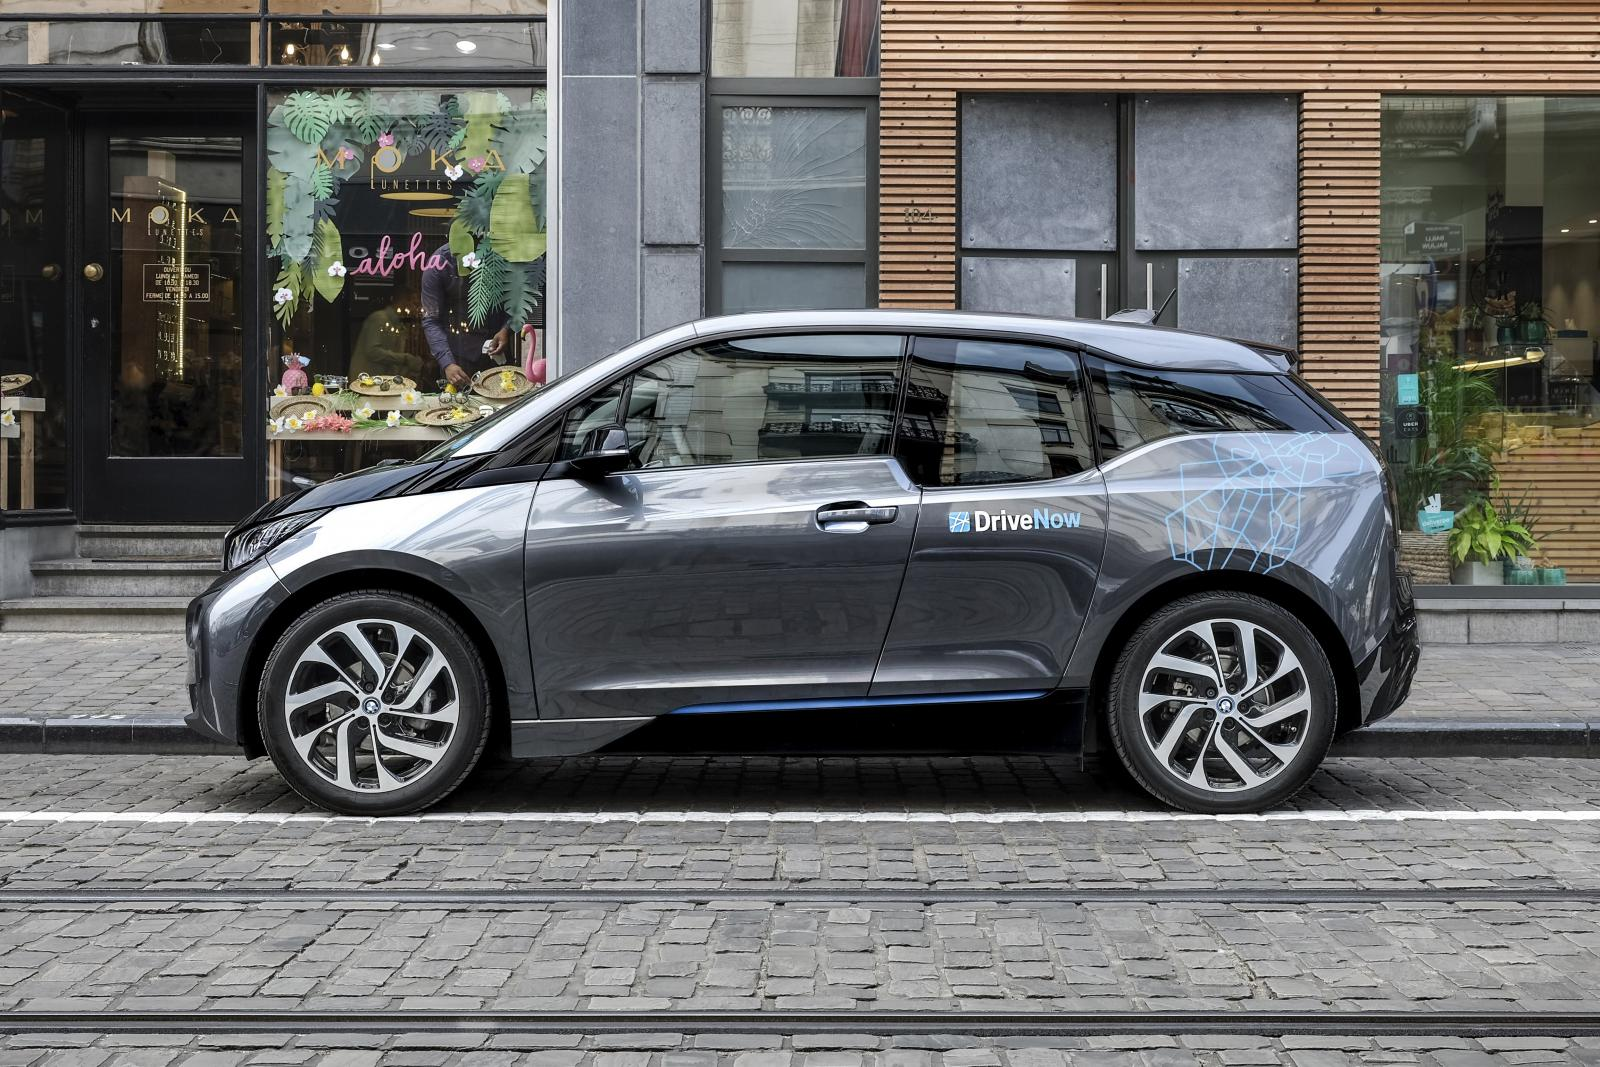 drivenow_brussels_bmw_i3_parking_c